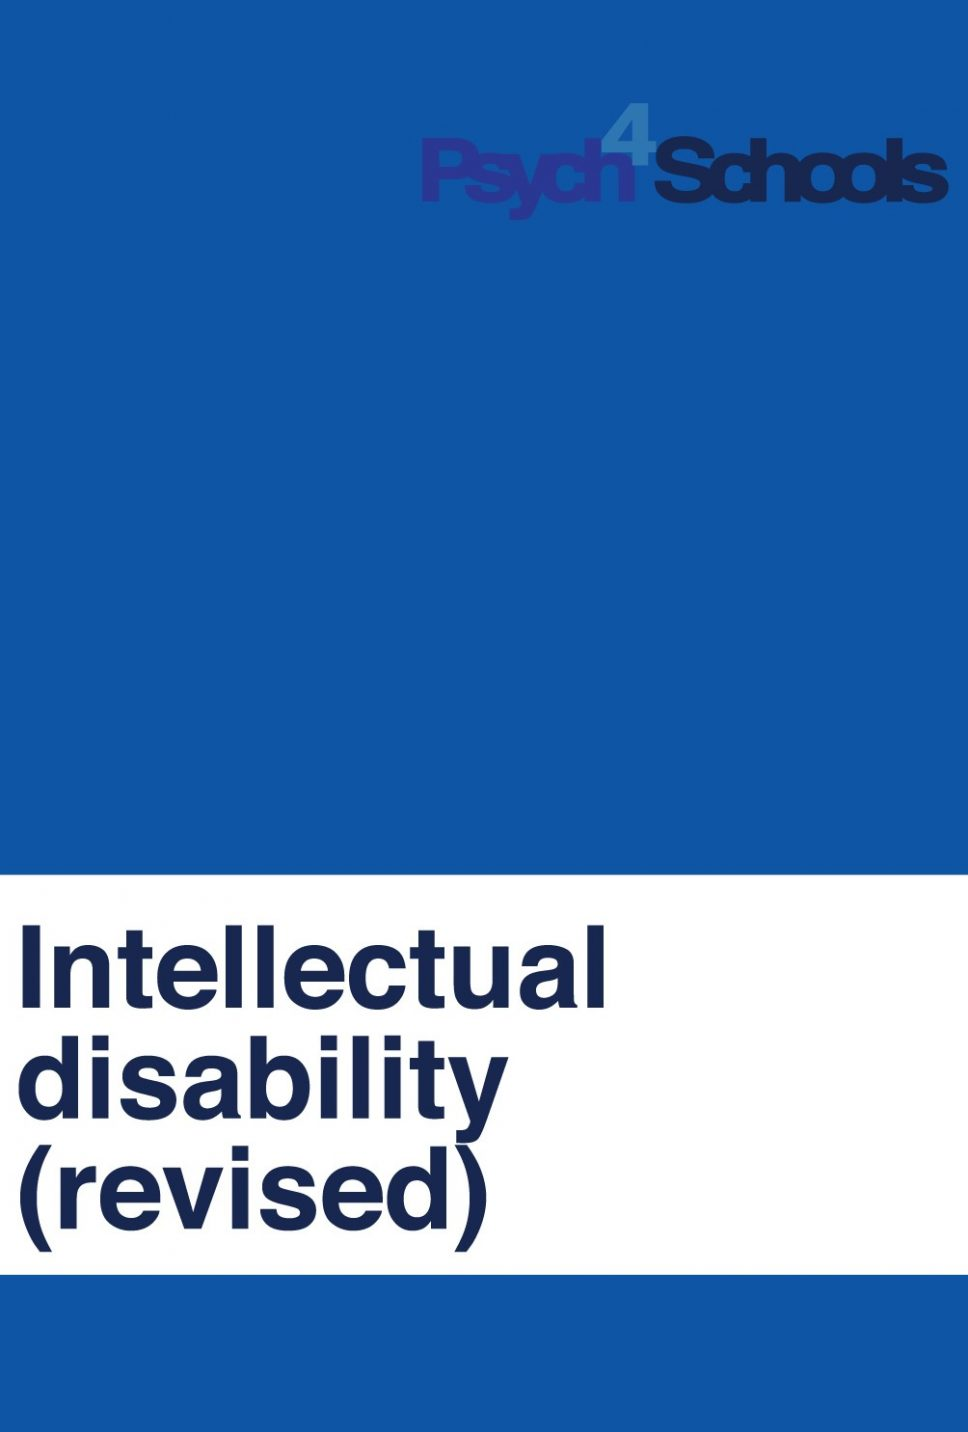 intellectual disability revised psych4schools